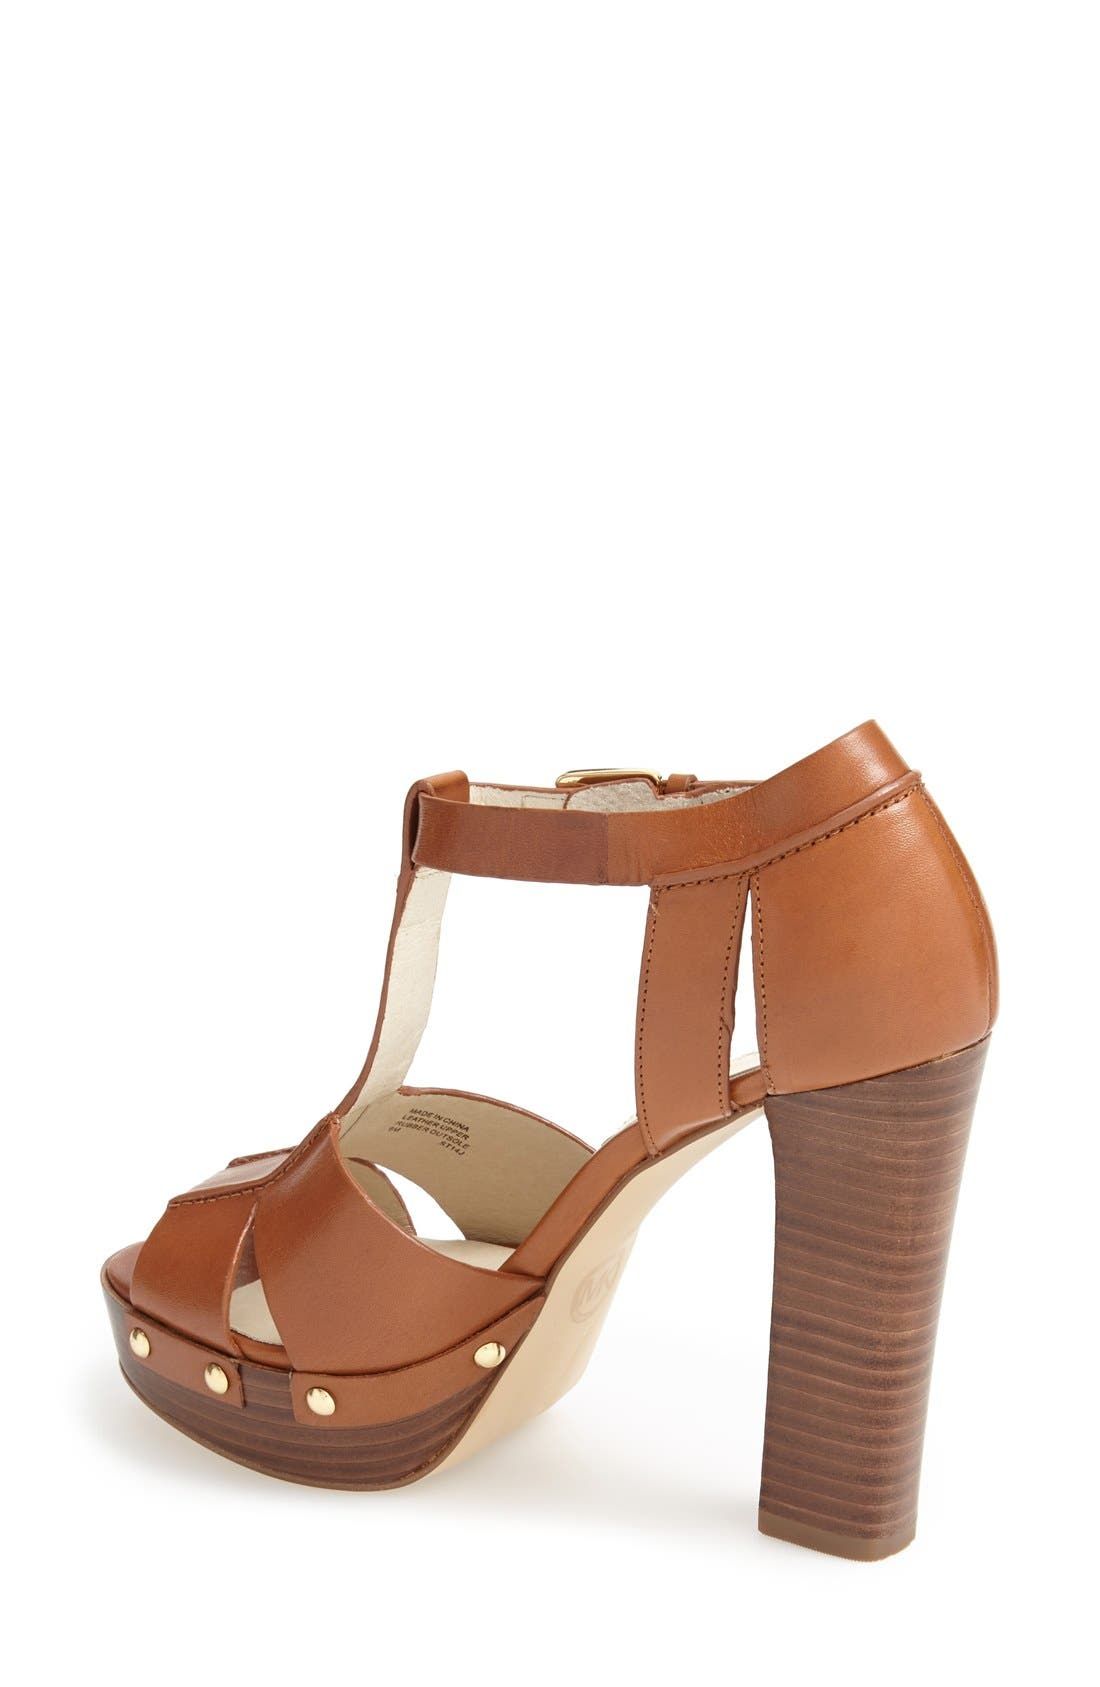 Alternate Image 2  - MICHAEL Michael Kors 'Beatrice' Leather T-Strap Platform Sandal (Women)